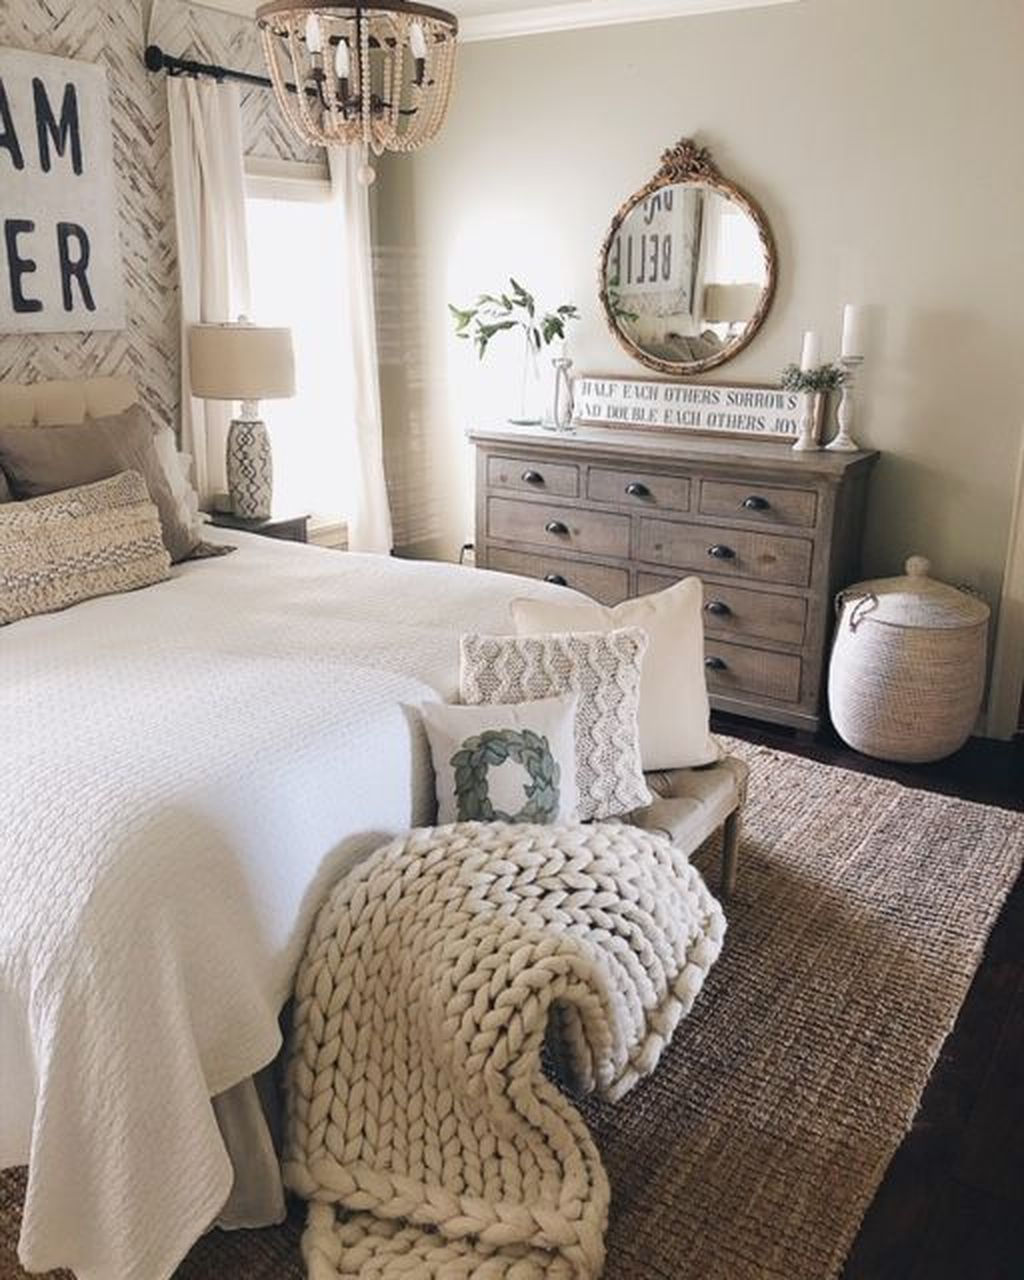 Vintage Farmhouse Bedroom Decor Ideas On A Budget To Try 13